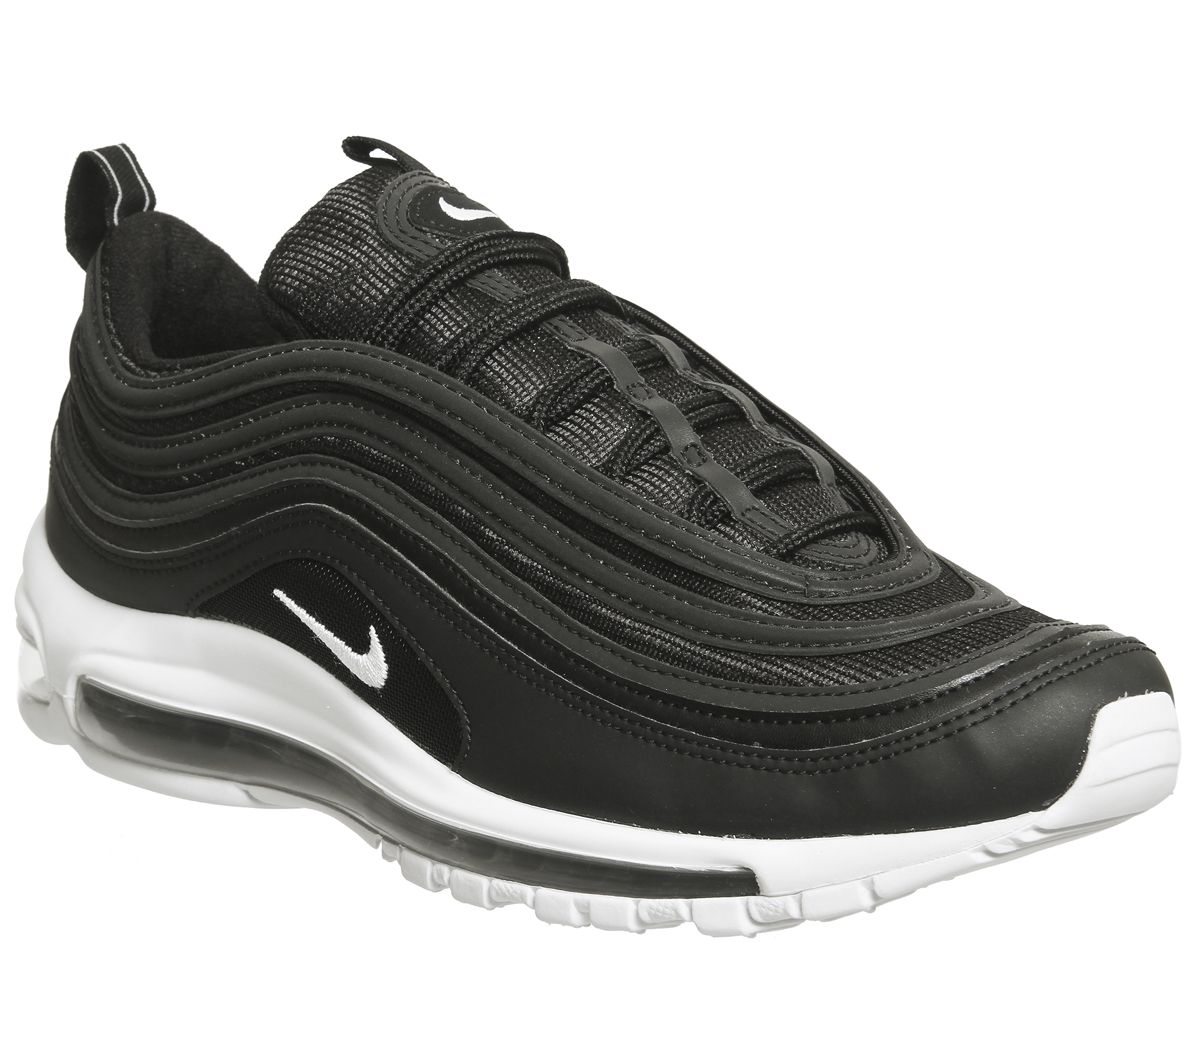 online store 7b272 0fa0c Nike Air Max 97 Trainers Black Wolf Grey White - His trainers